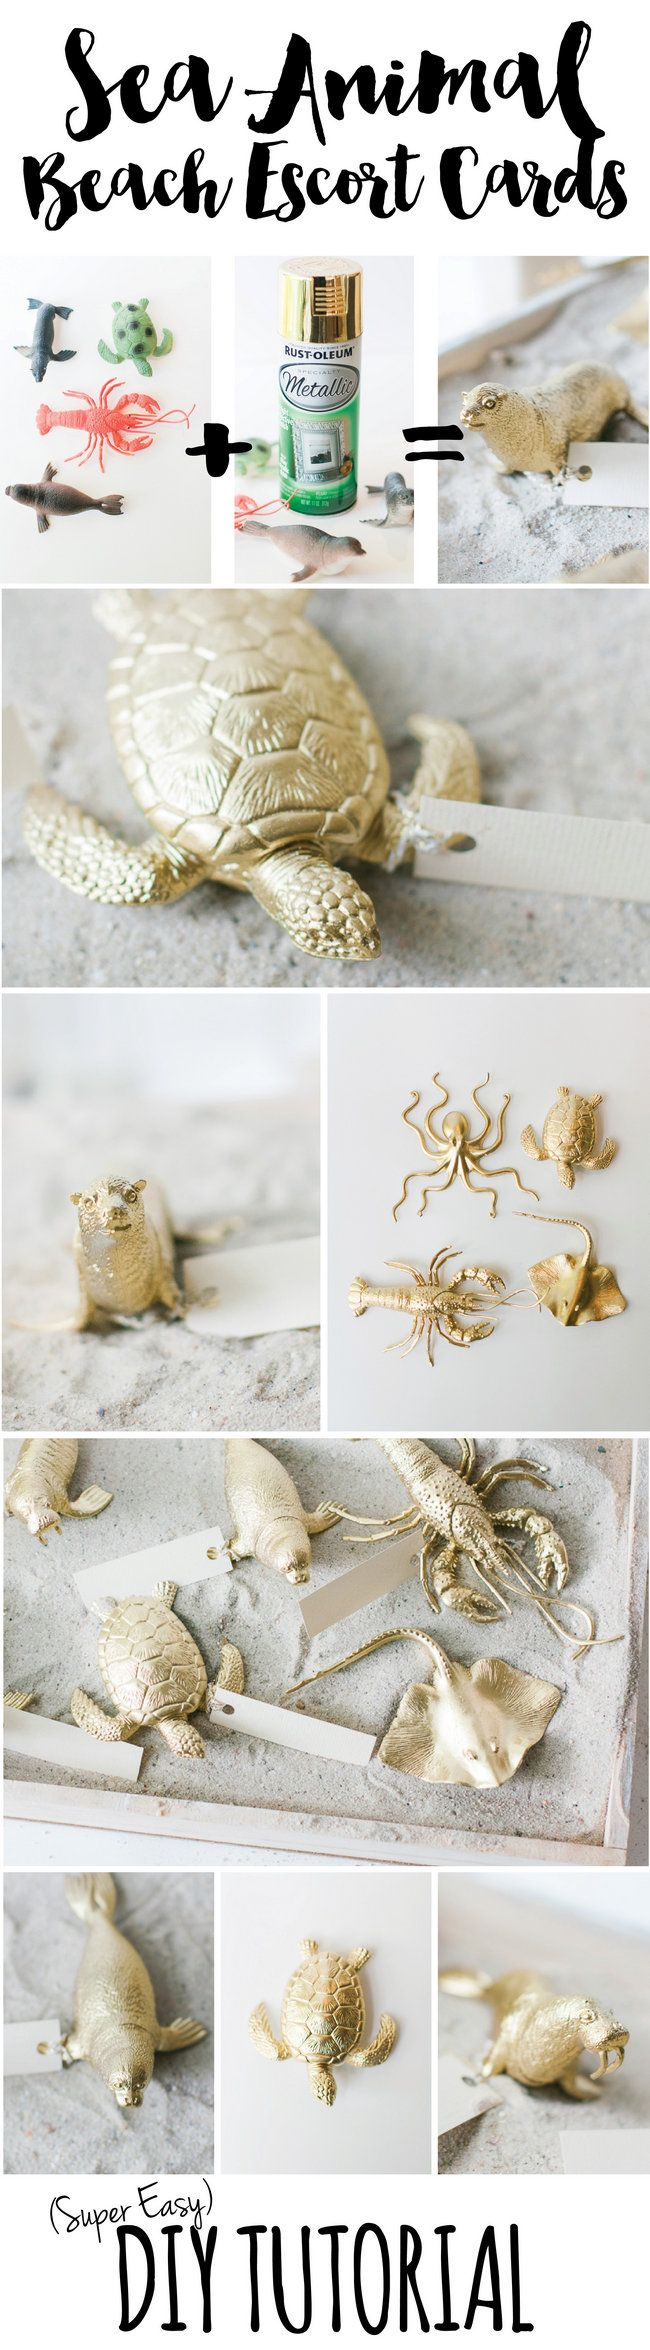 Learn how to make these adorable beach Wedding Escort Cards from plastic sea animals in minutes using gold spray paint and bakers twine! ♥ click http://www.confettidaydreams.com/diy-beach-wedding-escort-cards/ for the DIY tutorial and supply list.